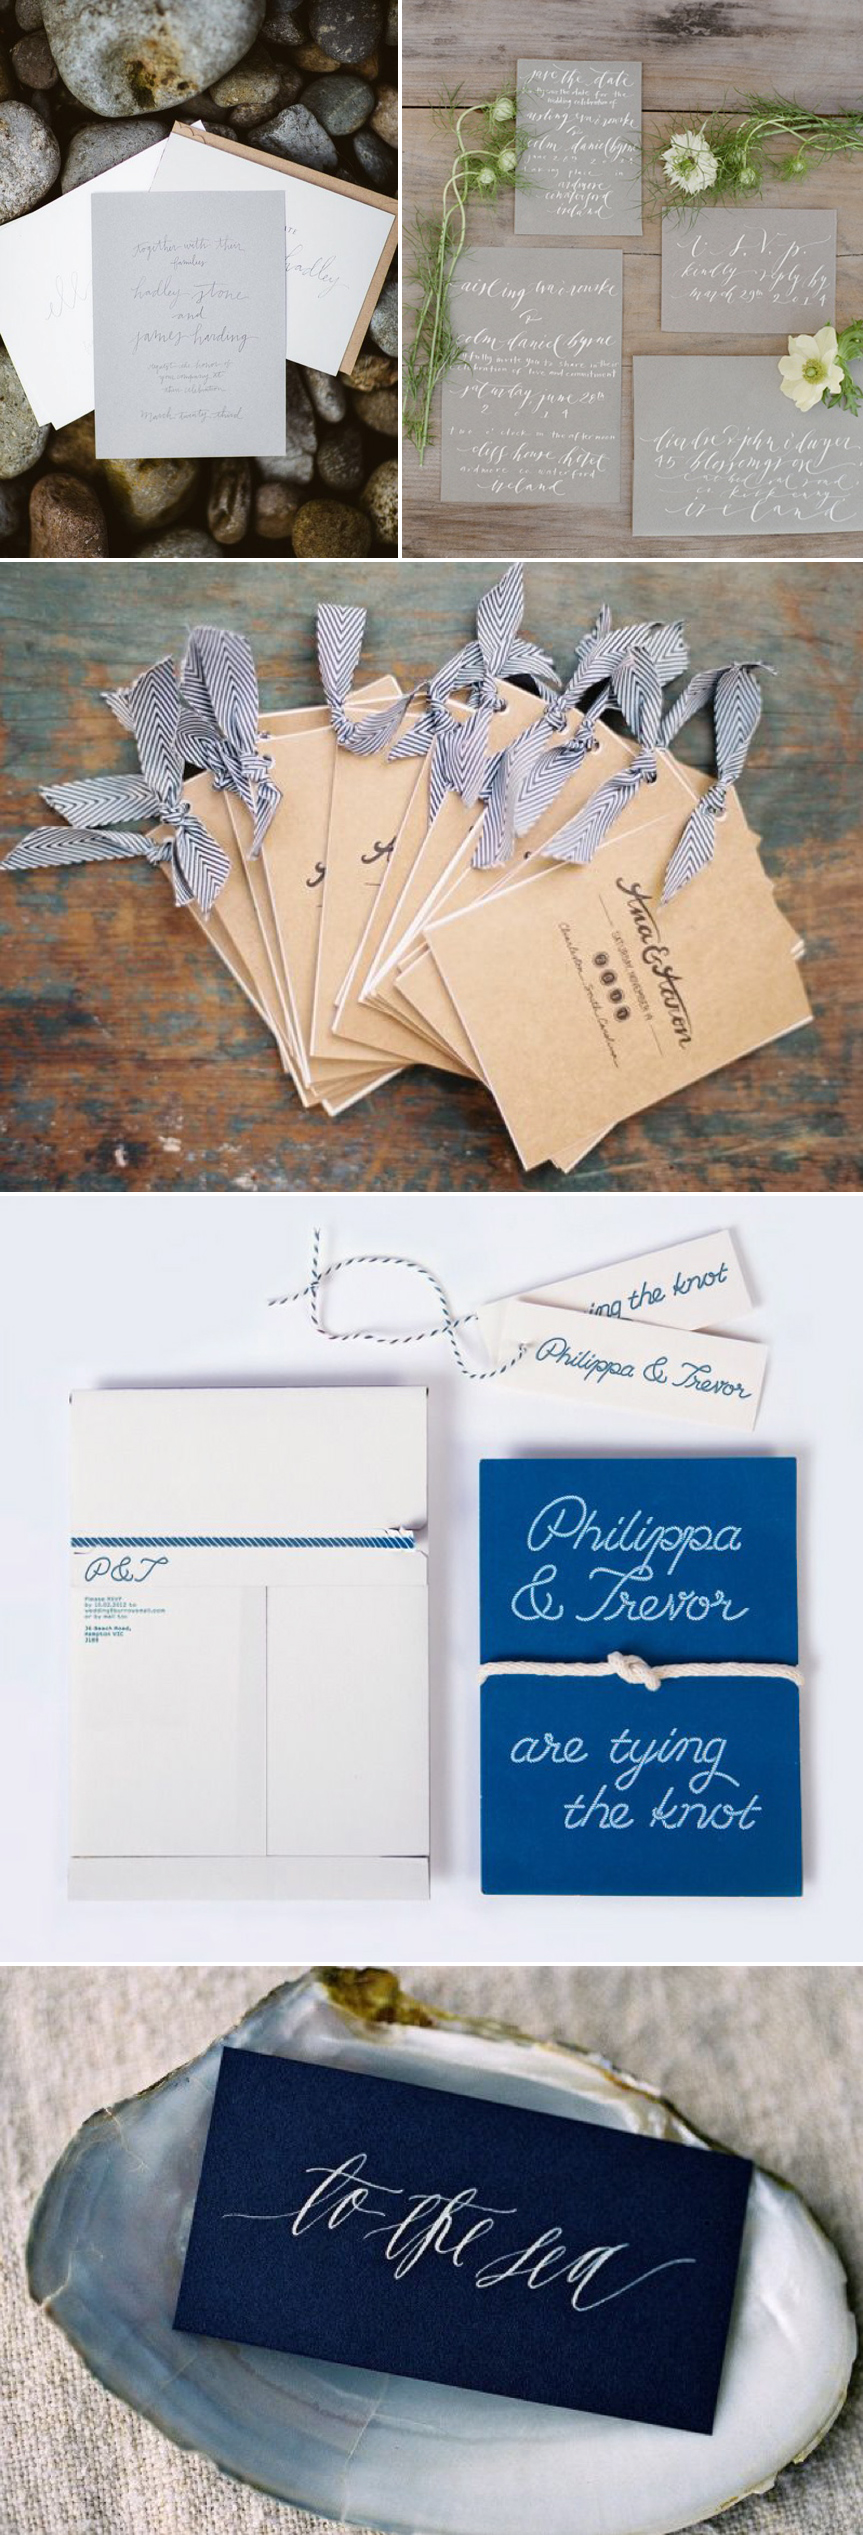 Coco Wedding Venues - Coastal Cool, Paper.